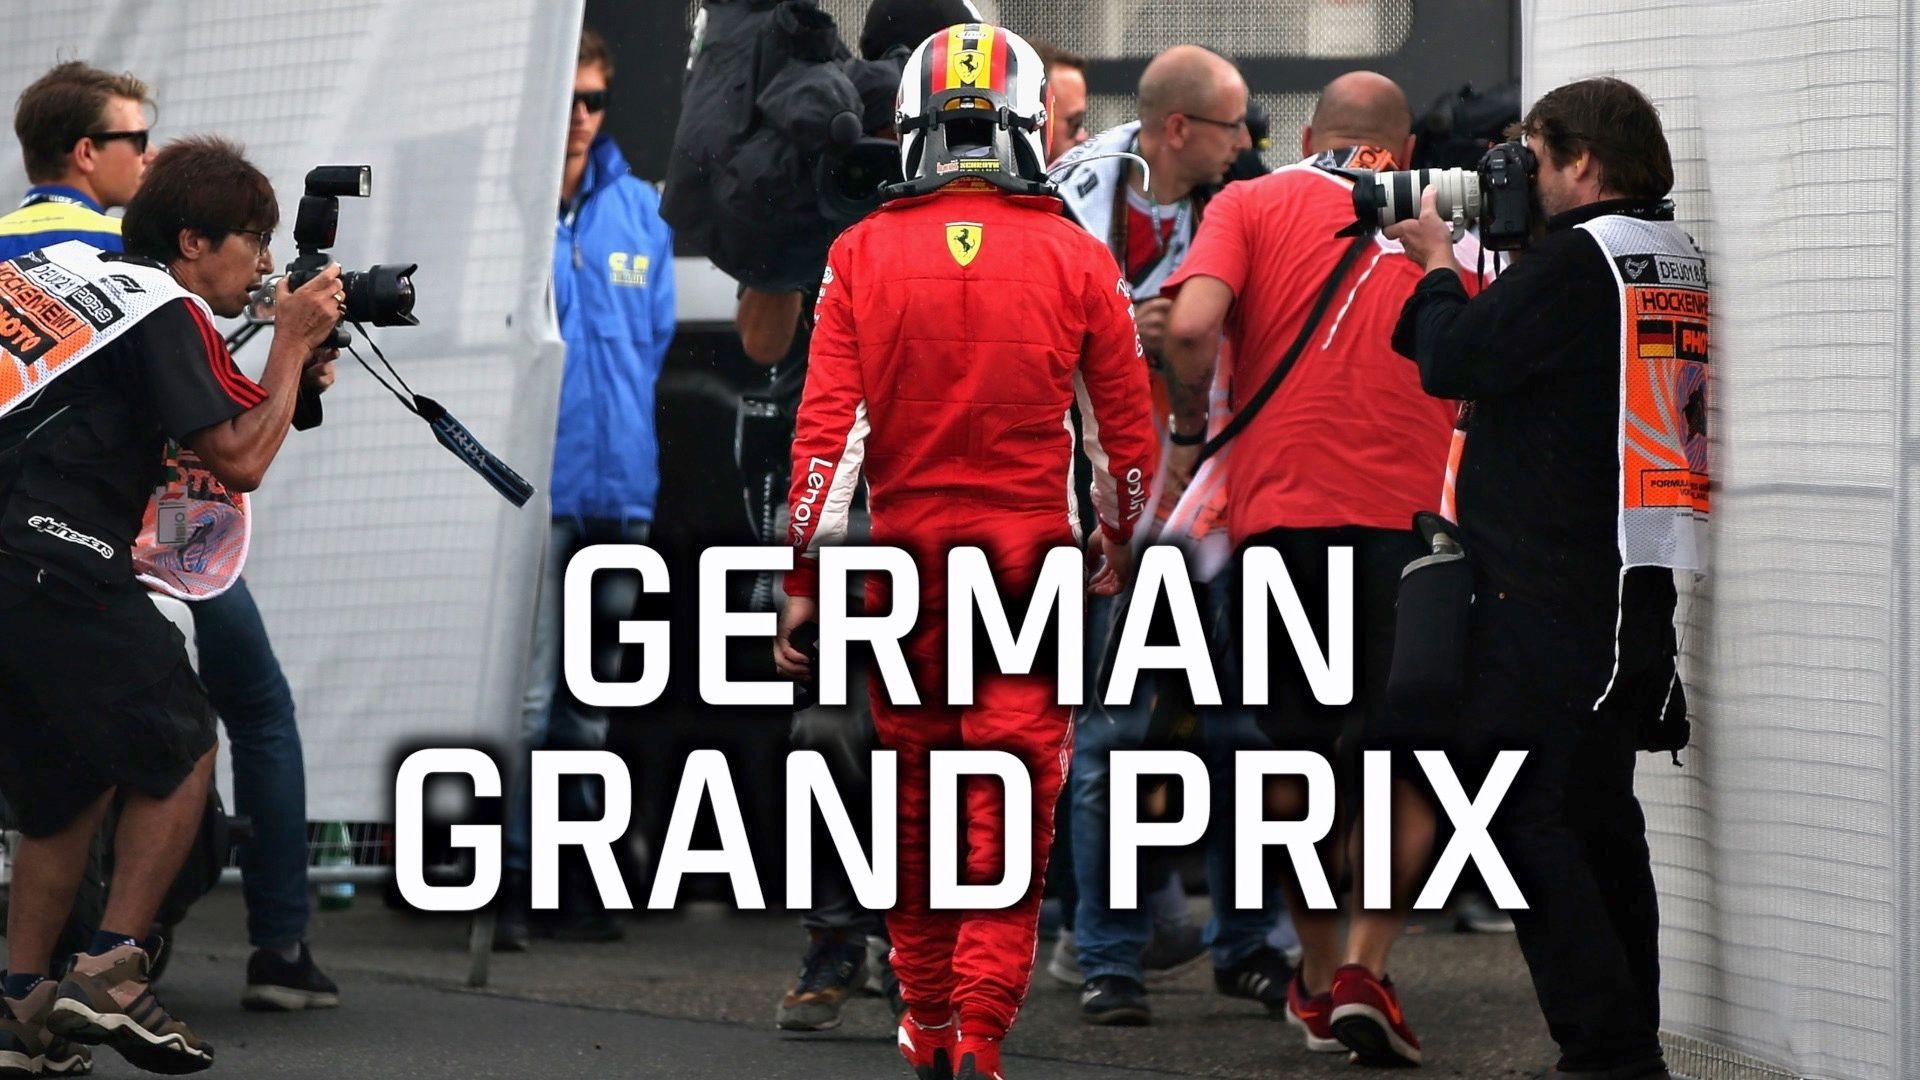 Social story of the German Grand Prix